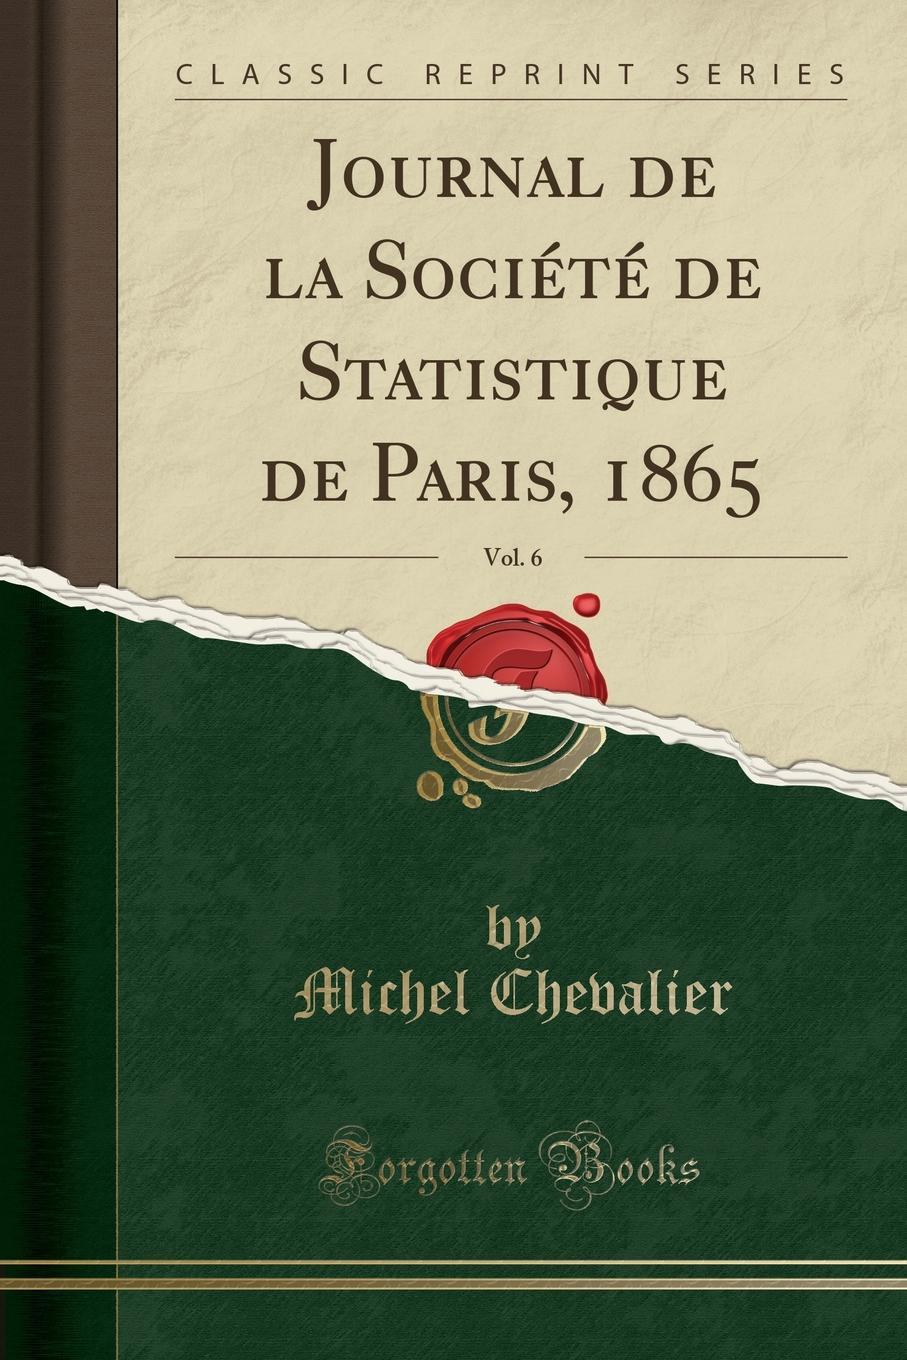 Journal de la Societe de Statistique de Paris, 1865, Vol. 6 (Classic Reprint) Excerpt from Journal de la SociР?tР? de Statistique de Paris, 1865...